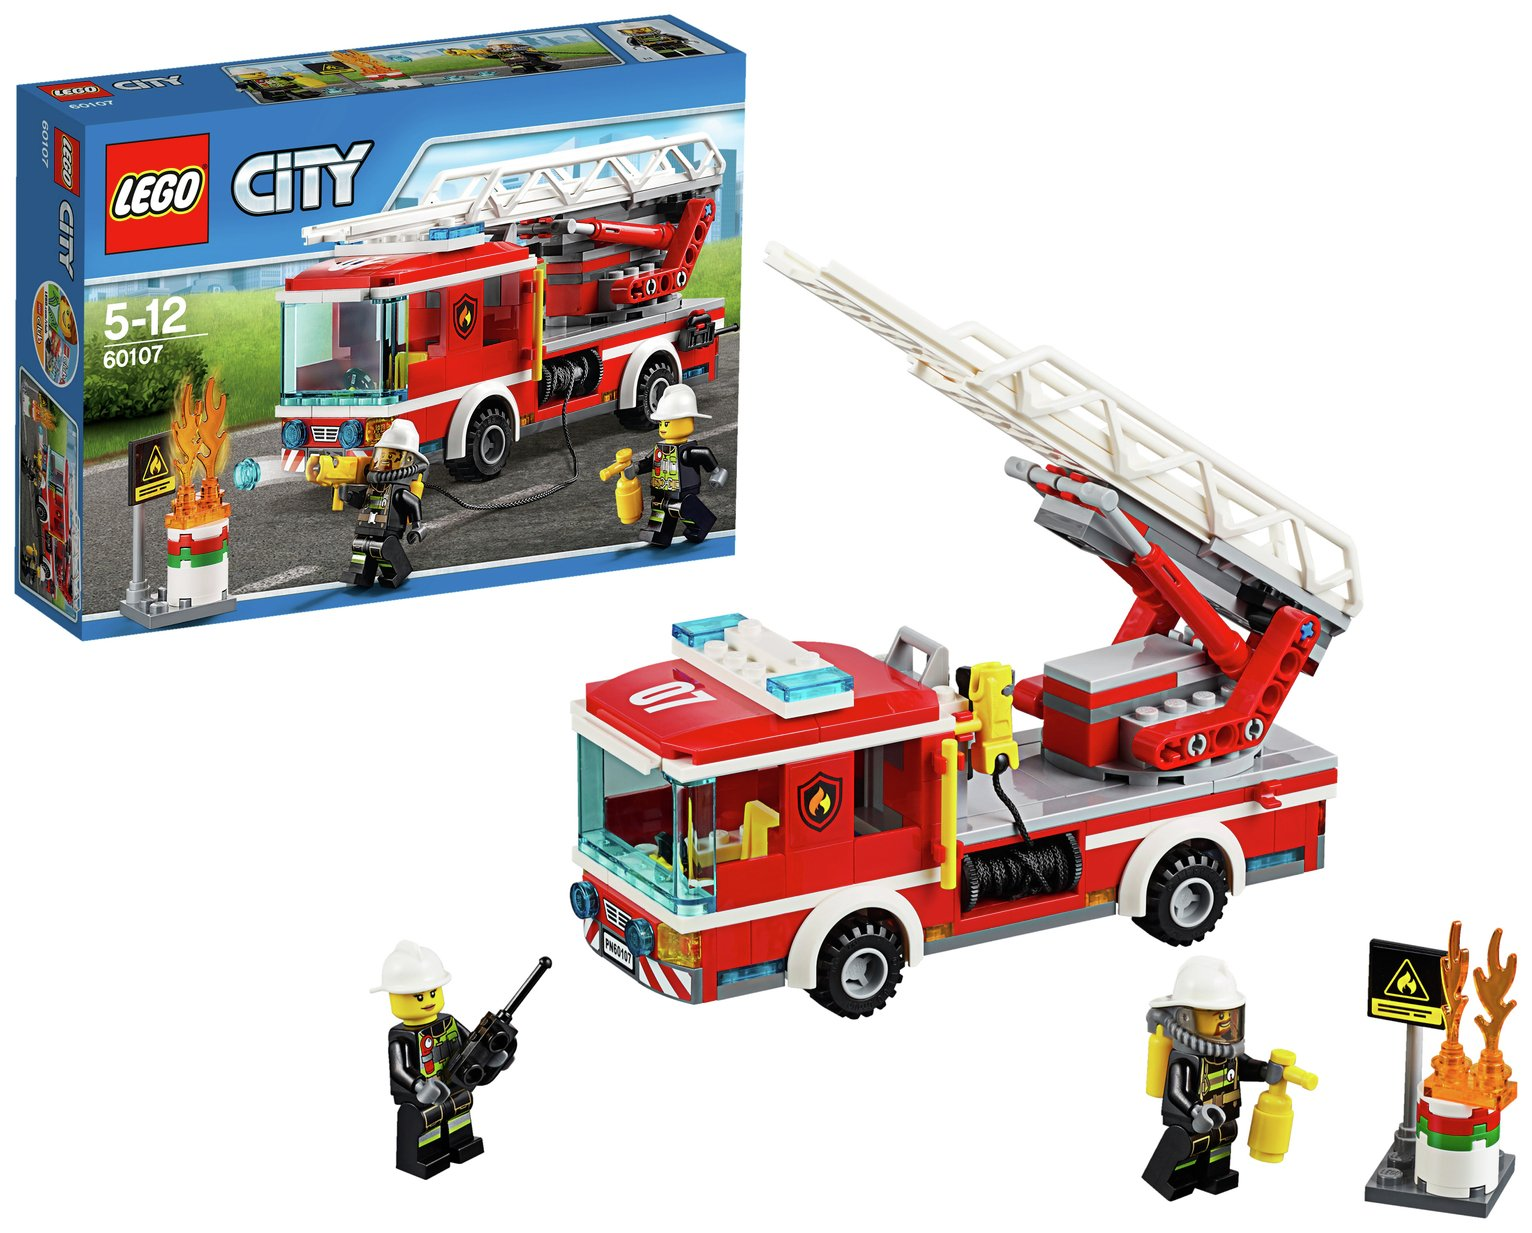 LEGO Fire Ladder Truck - 60107